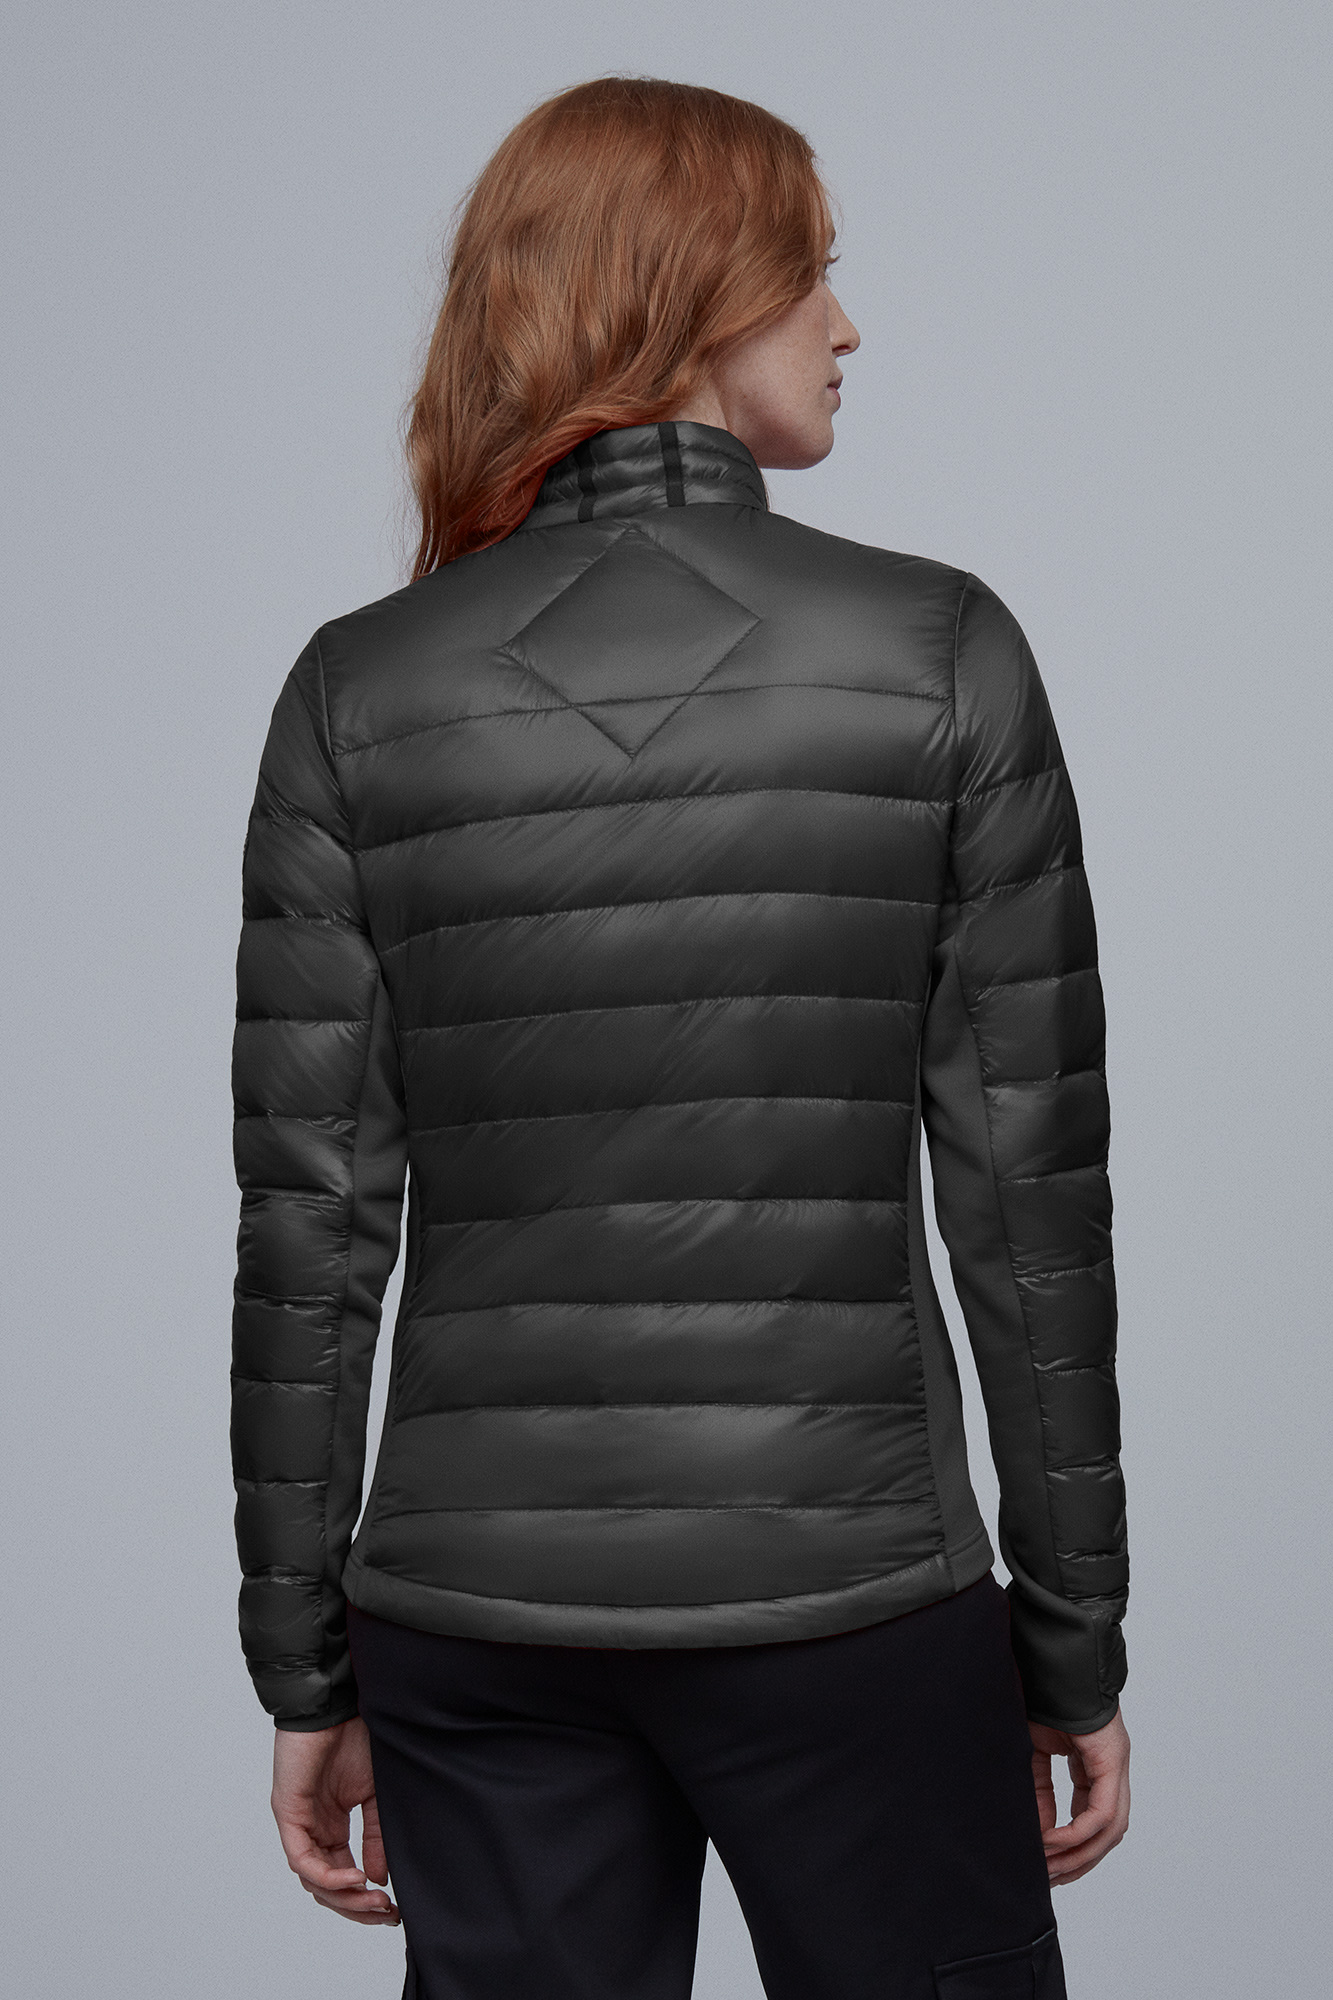 Women's Hybridge Lite Jacket | Canada Goose® - photo#39